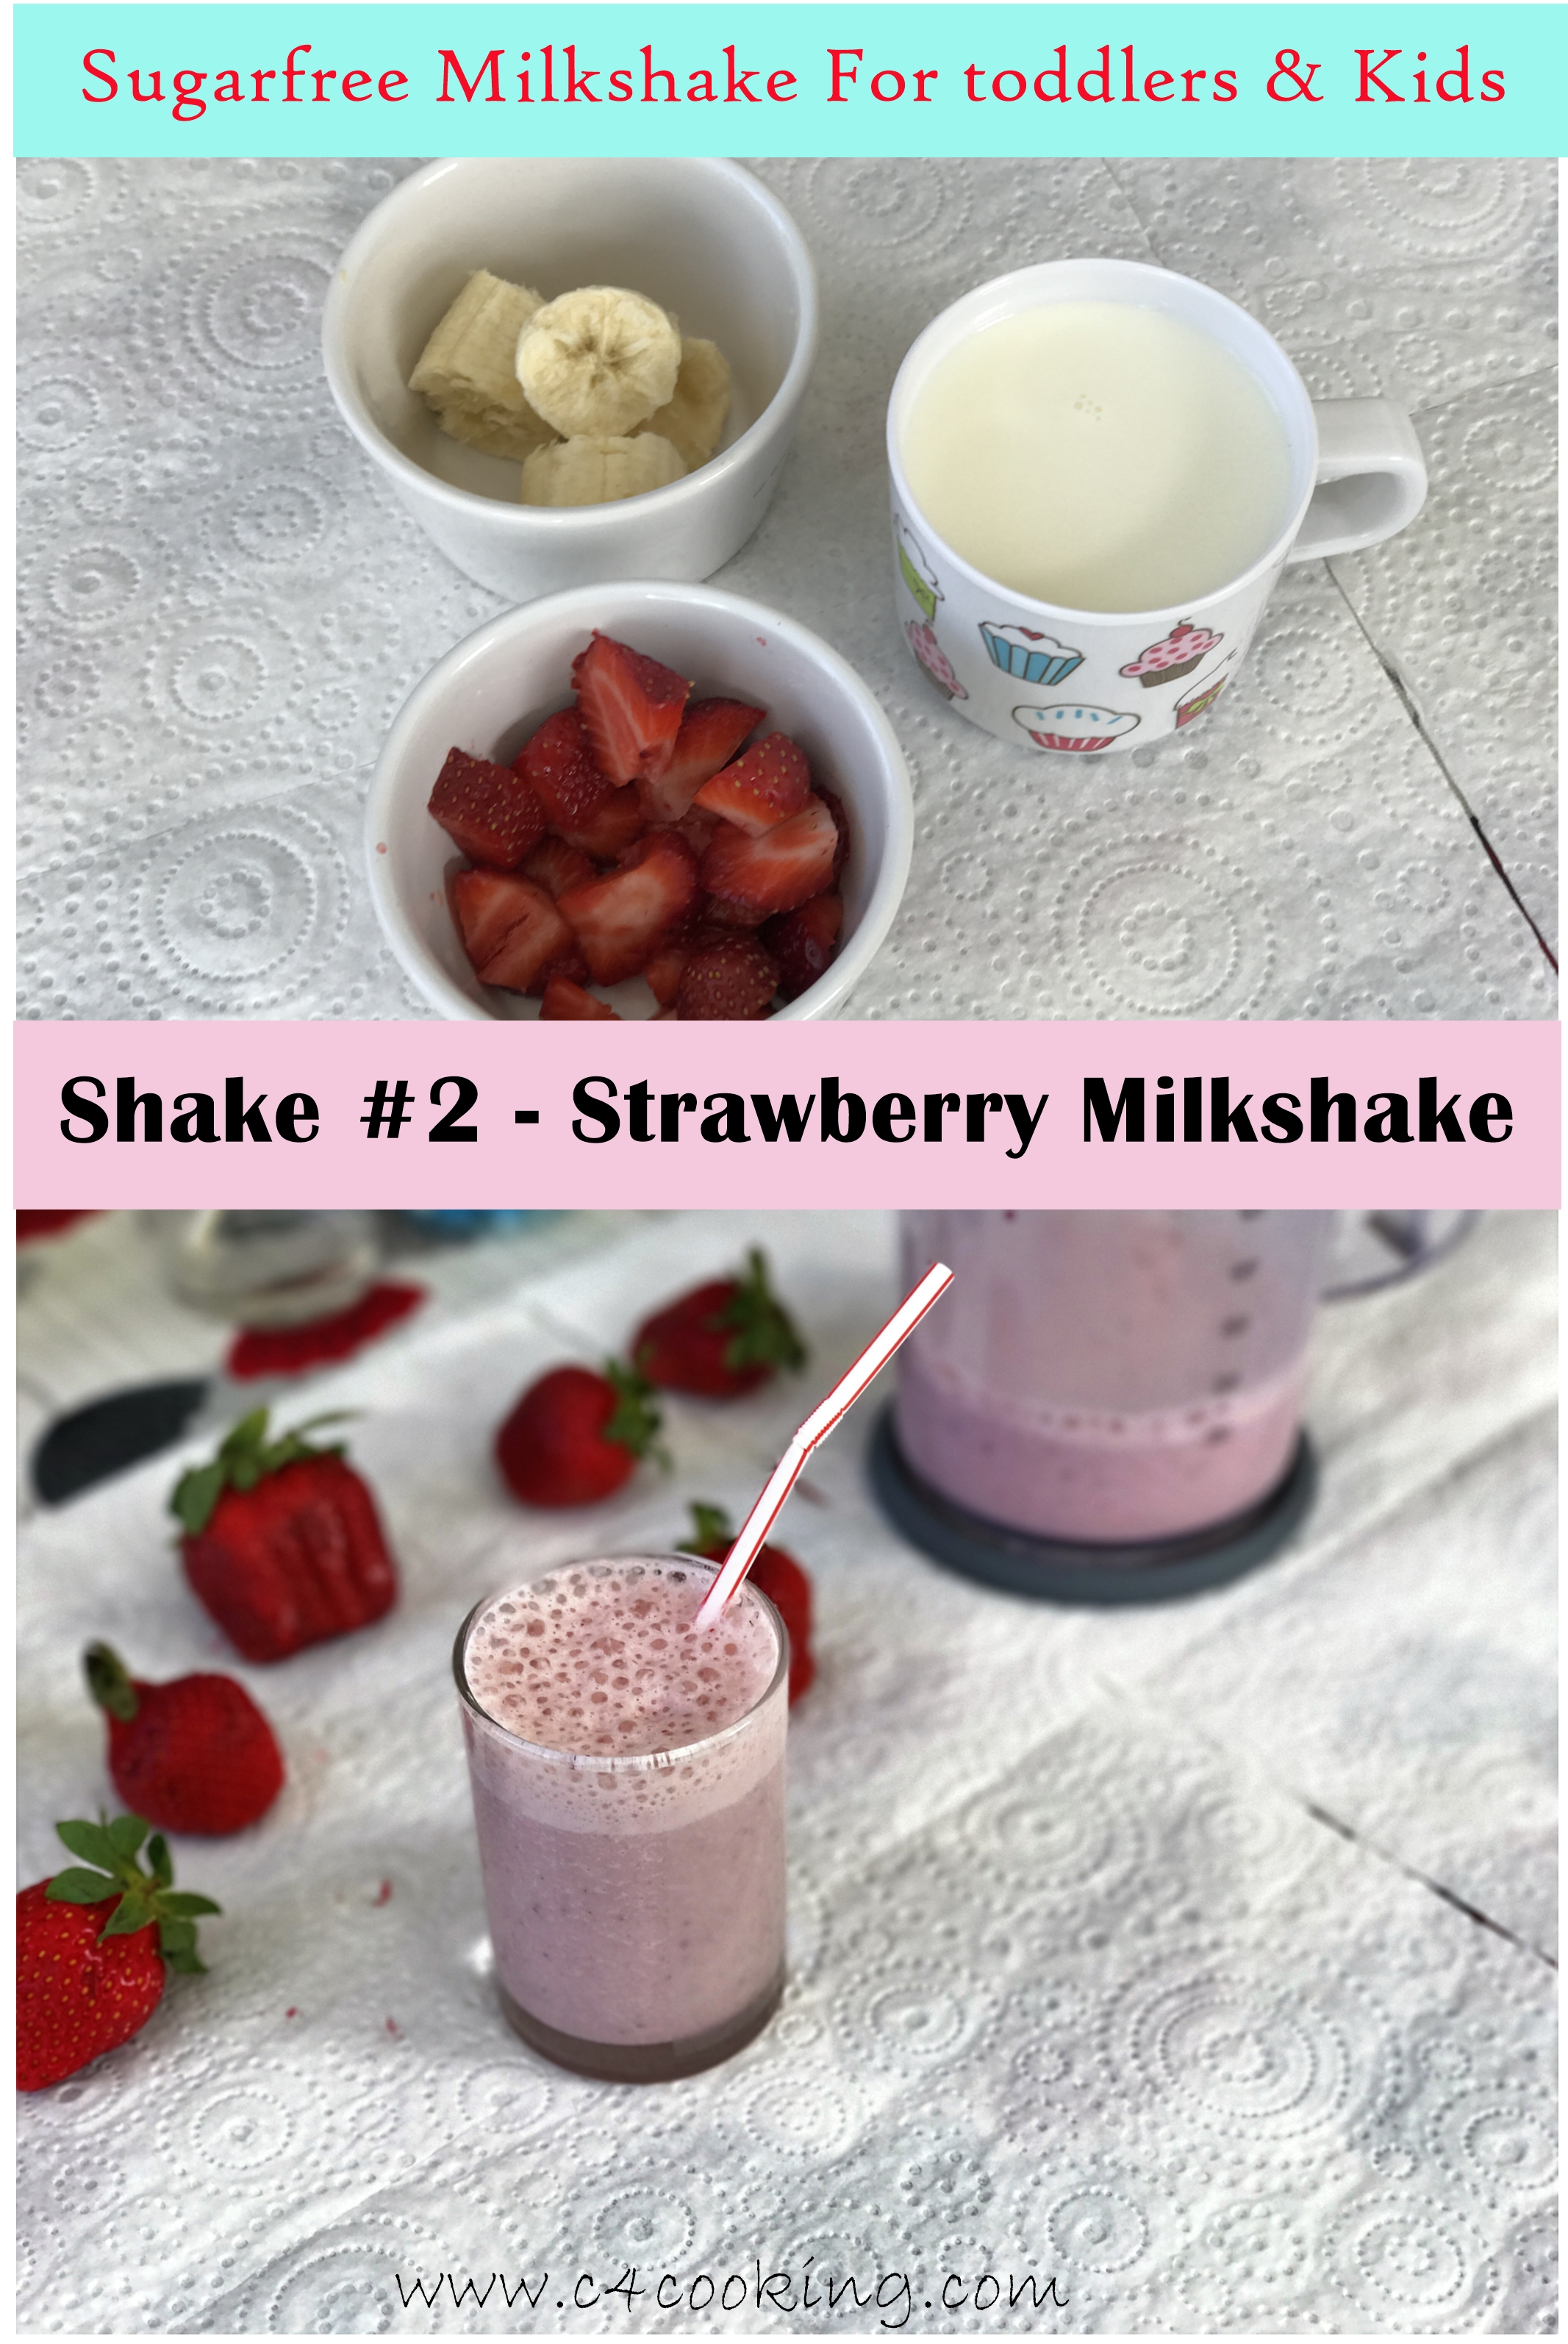 strawberry shake for kids, sugarfree shake for toddlers